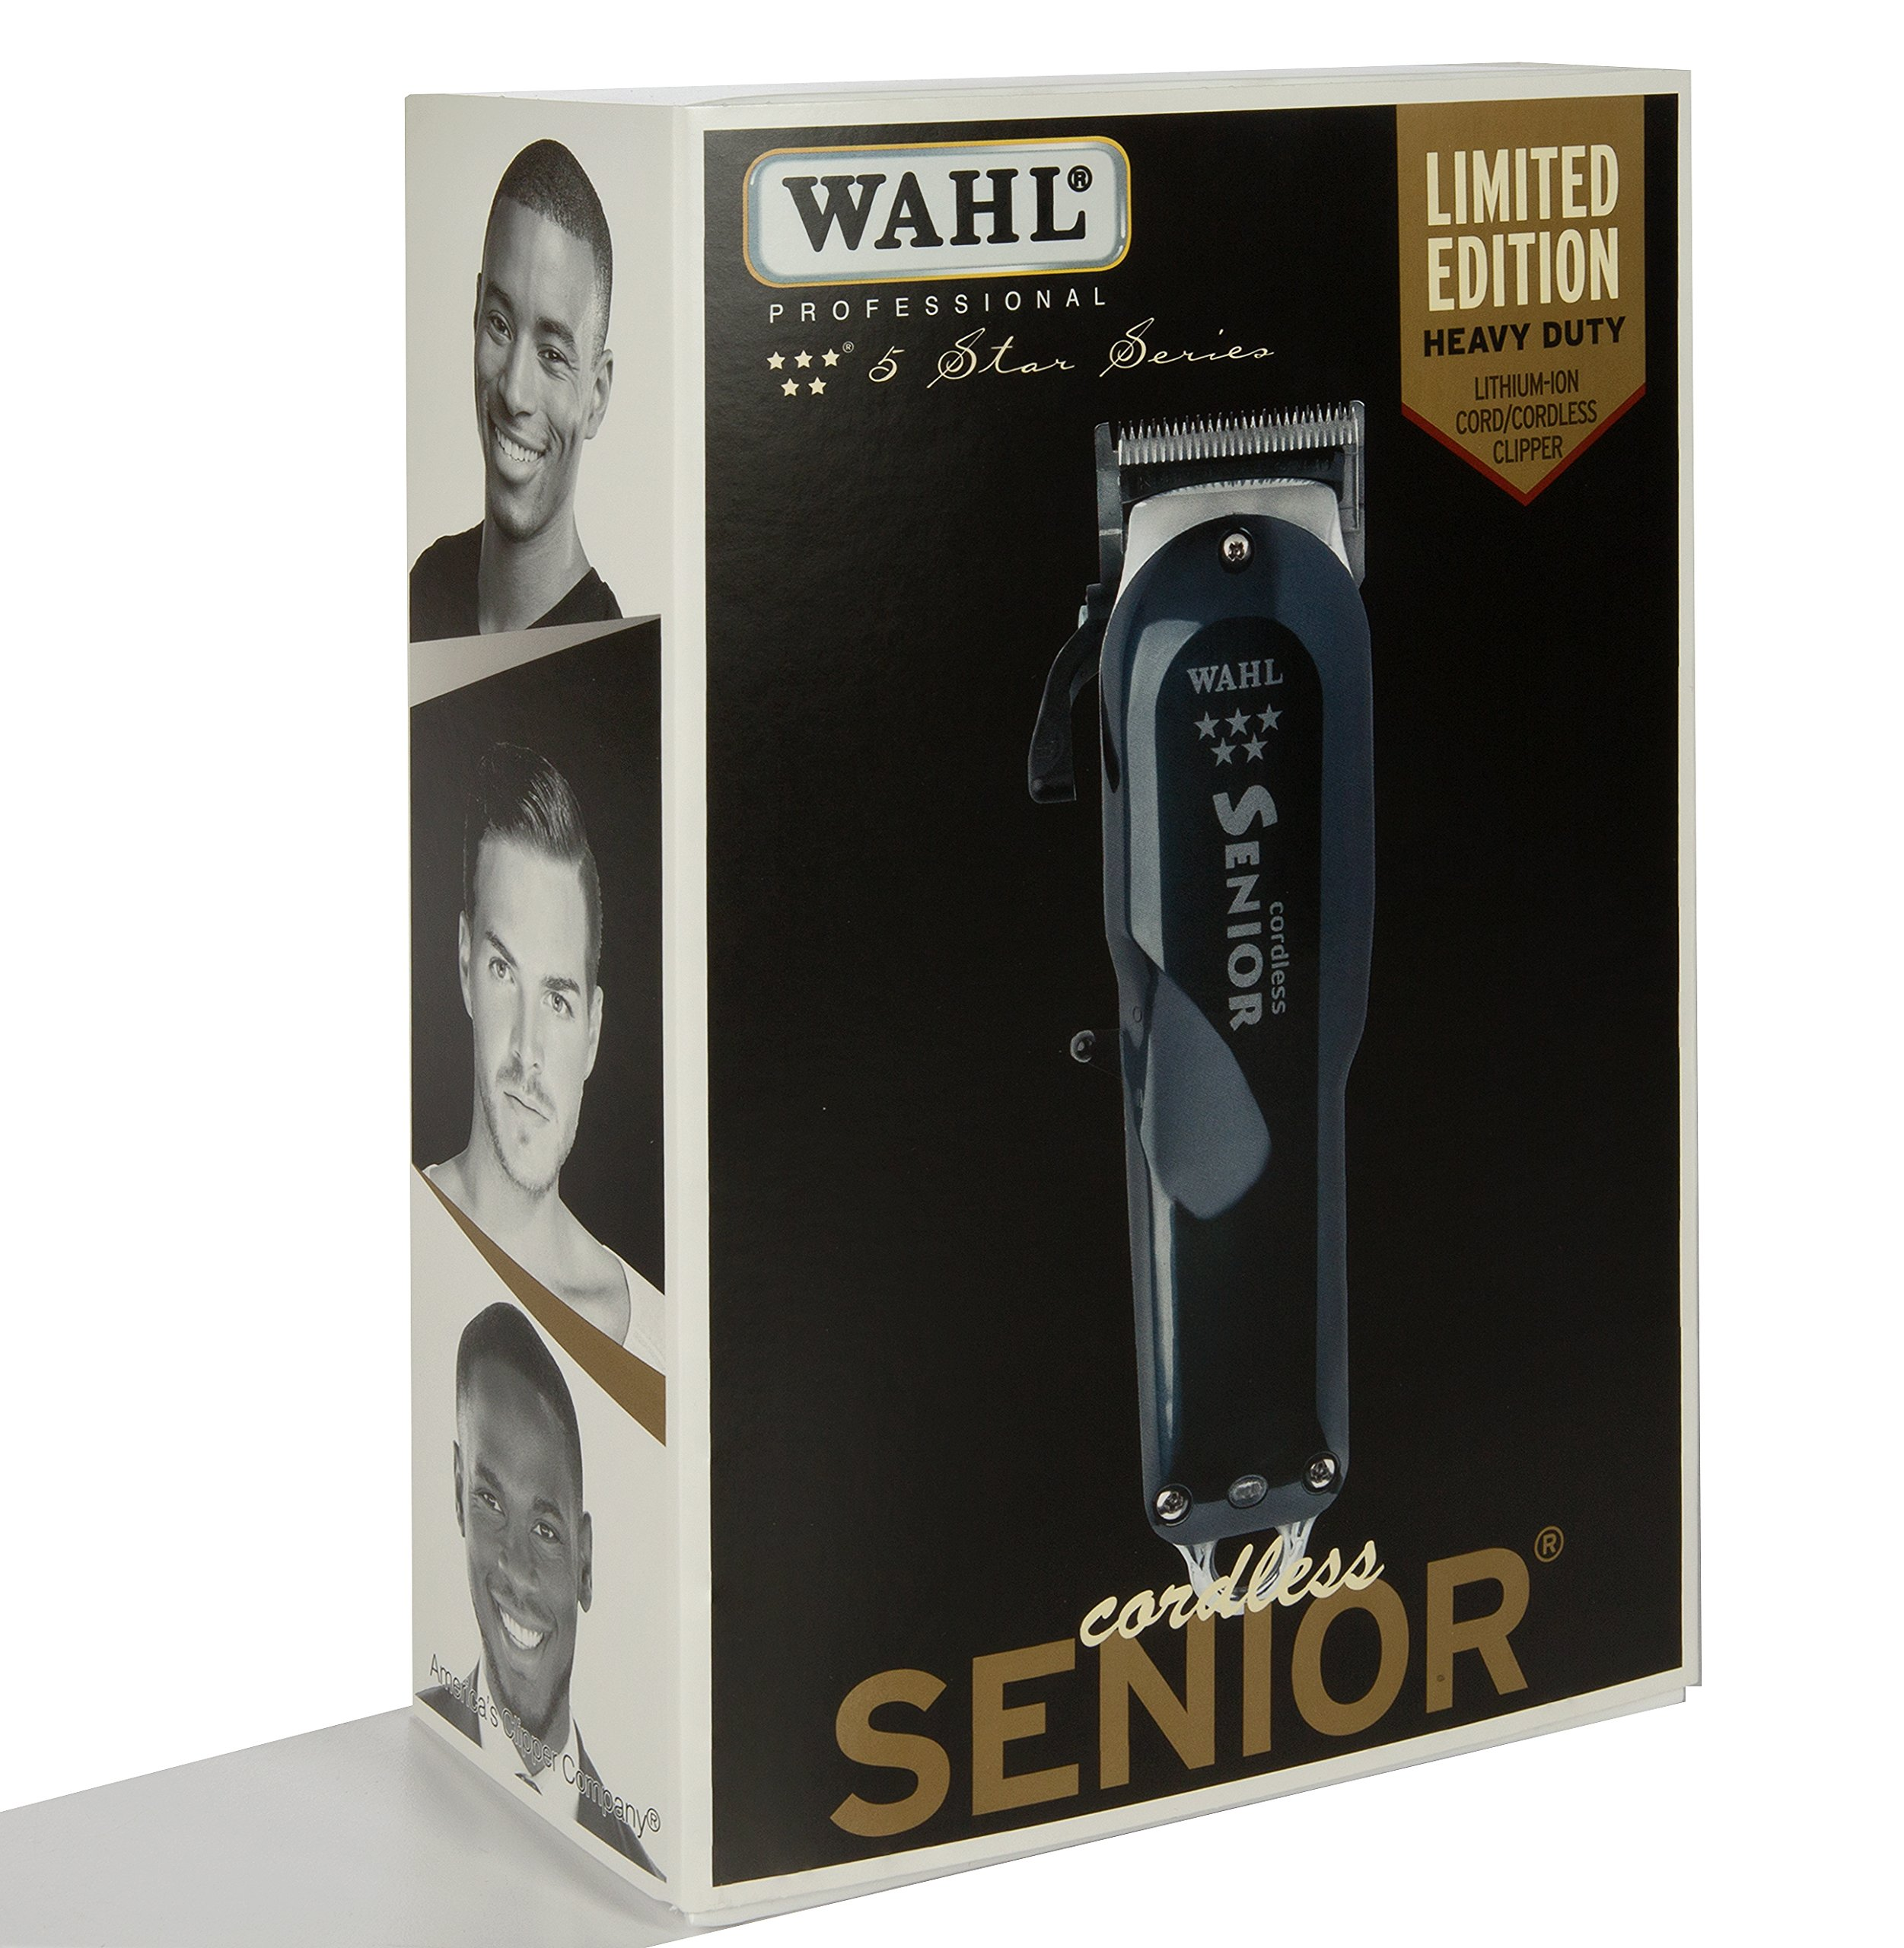 Wahl Professional 5-Star Series Cordless Senior Clipper #8504 – Great for Professional Stylists and Barbers – 70 Minute Run Time by Wahl Professional (Image #2)